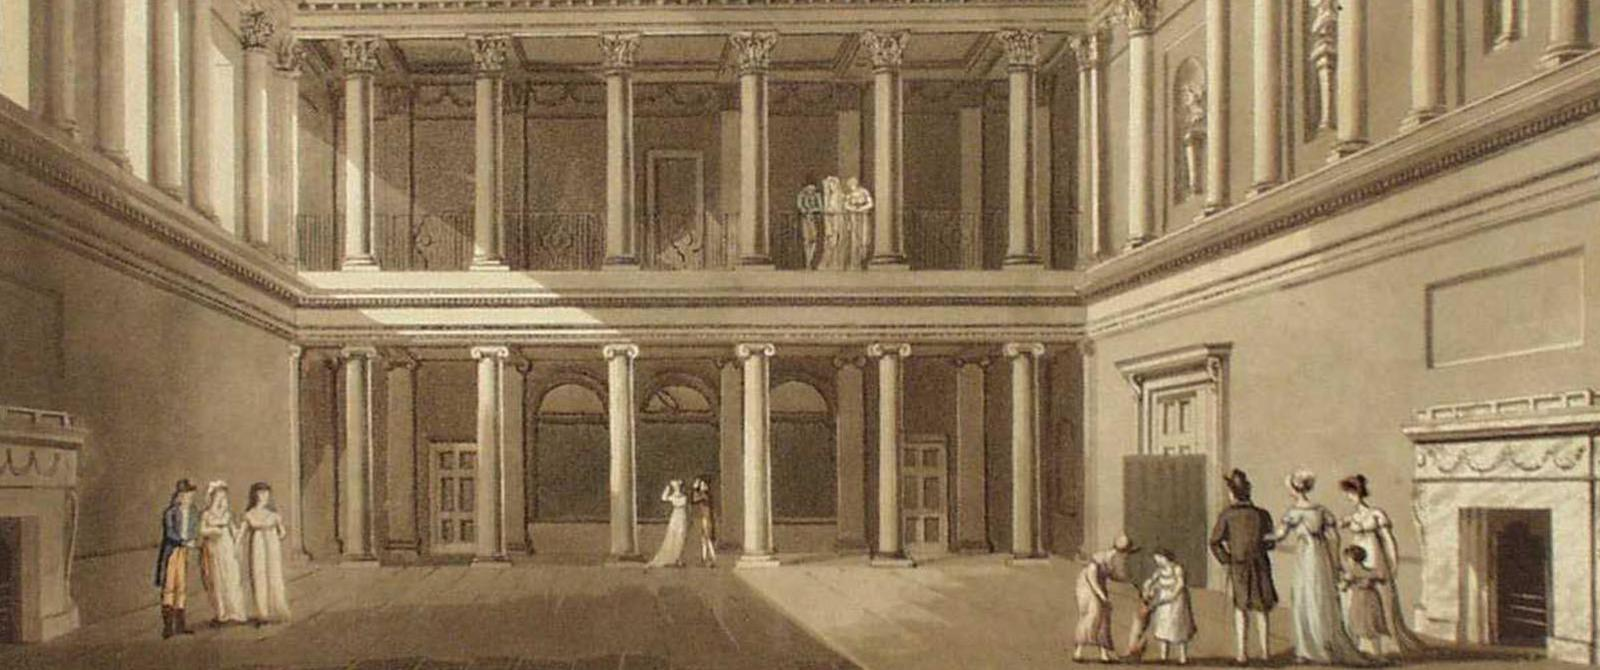 Image: 'The Concert Room', 1805 print by John Claude Nattes